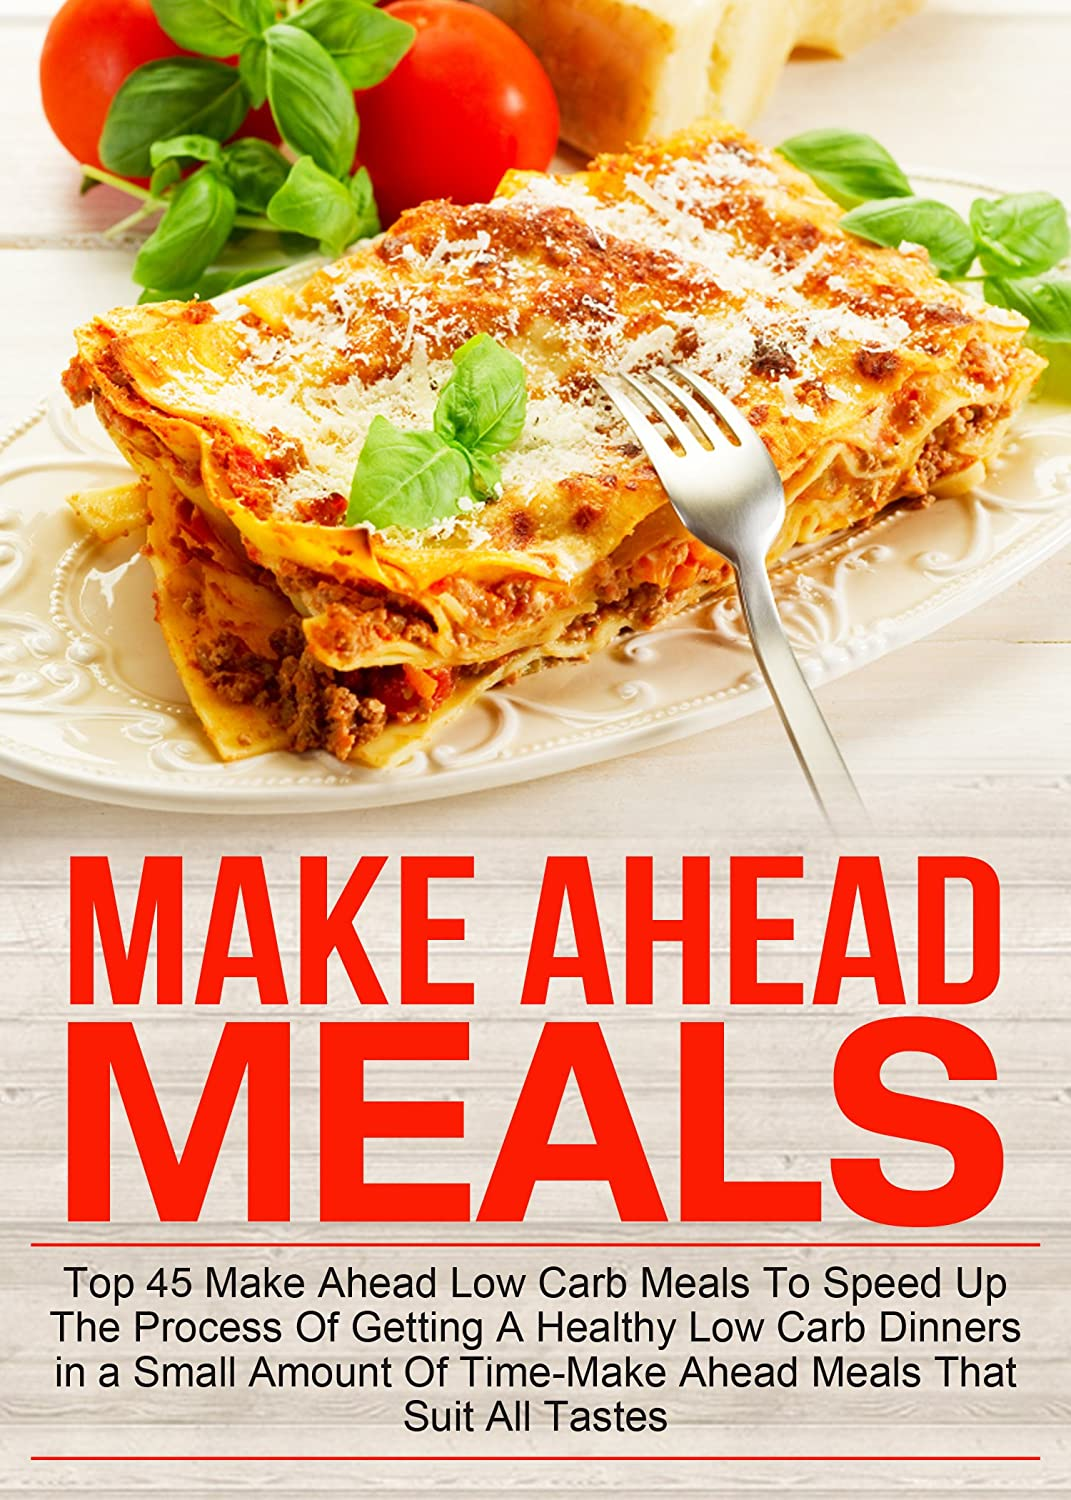 Make Ahead Meals: Top 45 Make Ahead Low Carb Meals